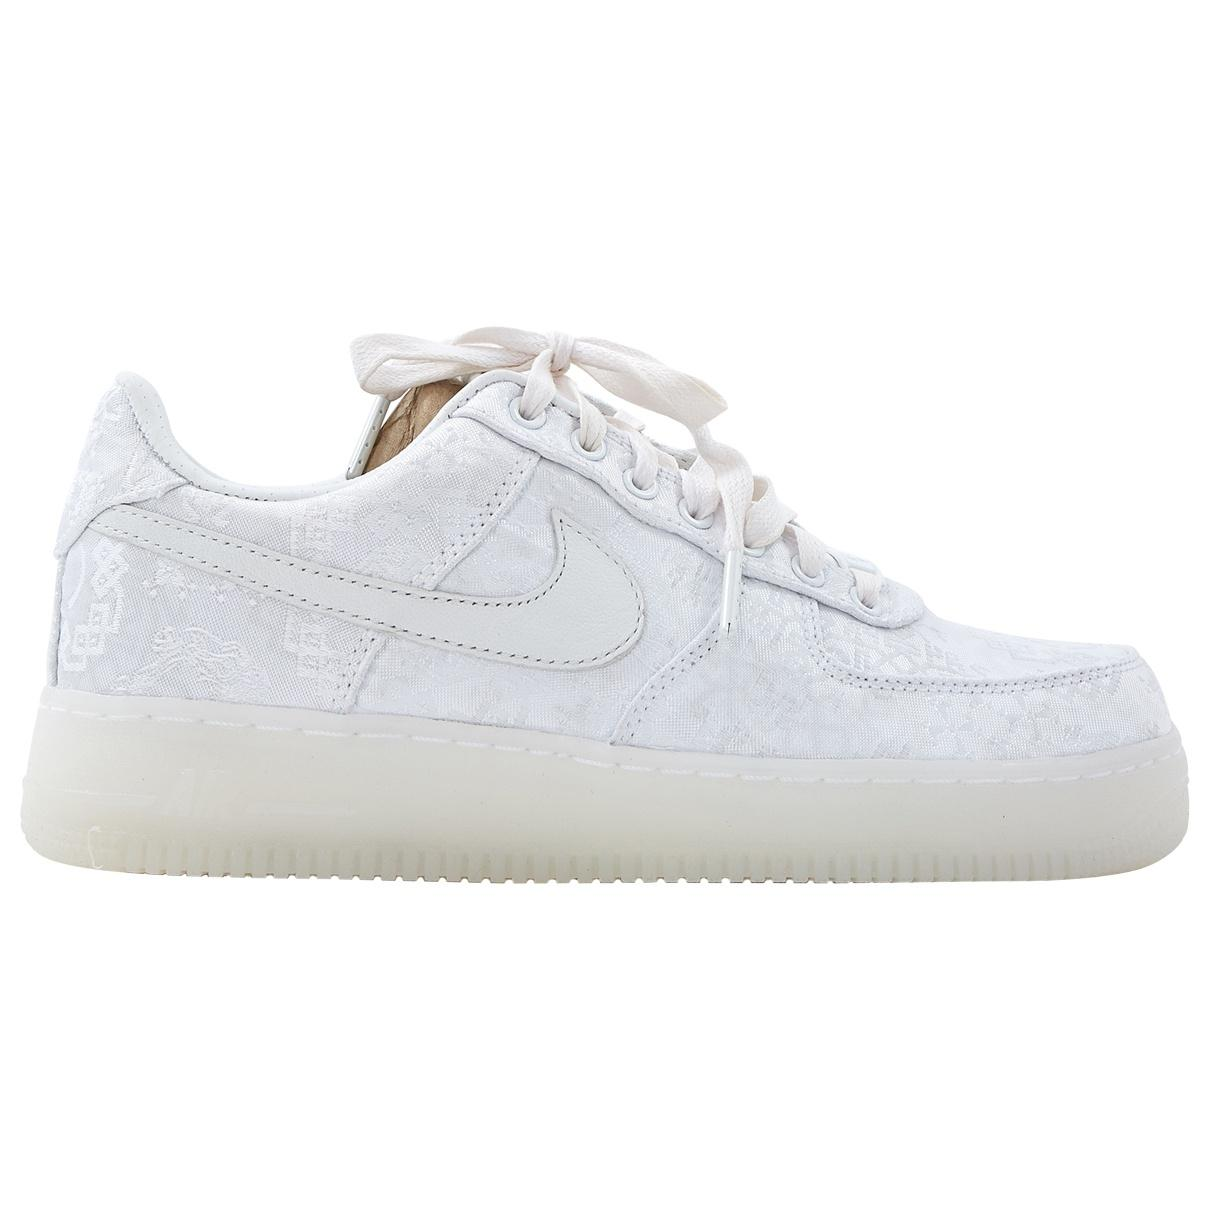 new style f643e 6889b Nike Air Force 1 Cloth Trainers in White - Lyst